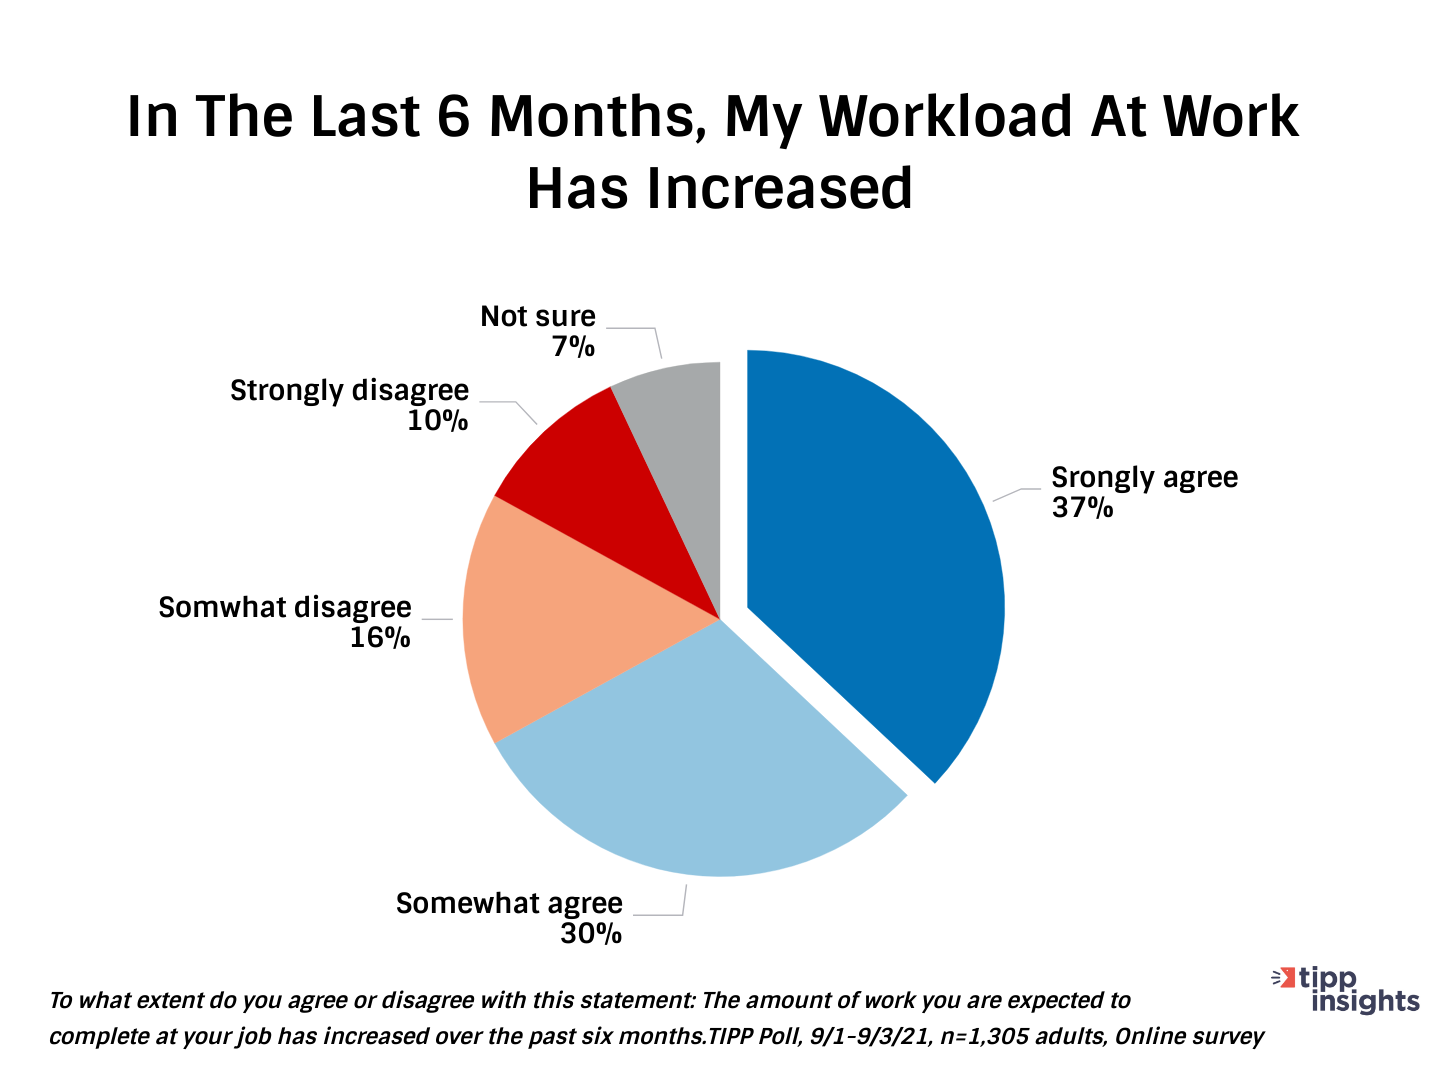 TIPP Poll Results: Has workloads in the united states increased over the past 6 months?